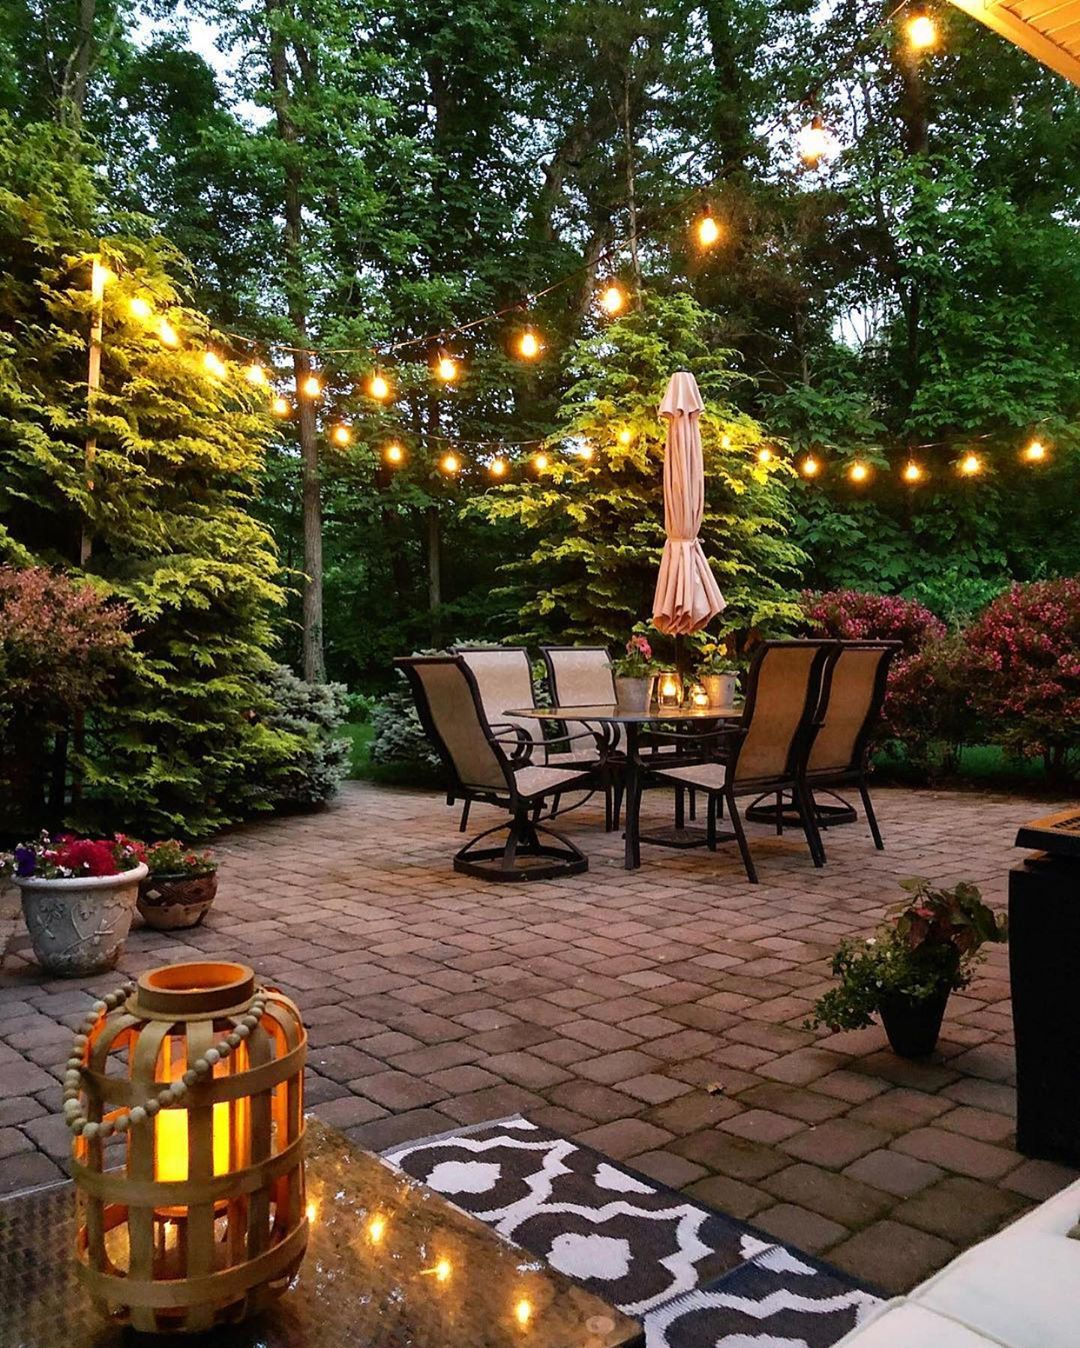 Have You Done Any Outside Projects Latel Outdoorspace - Home Decor